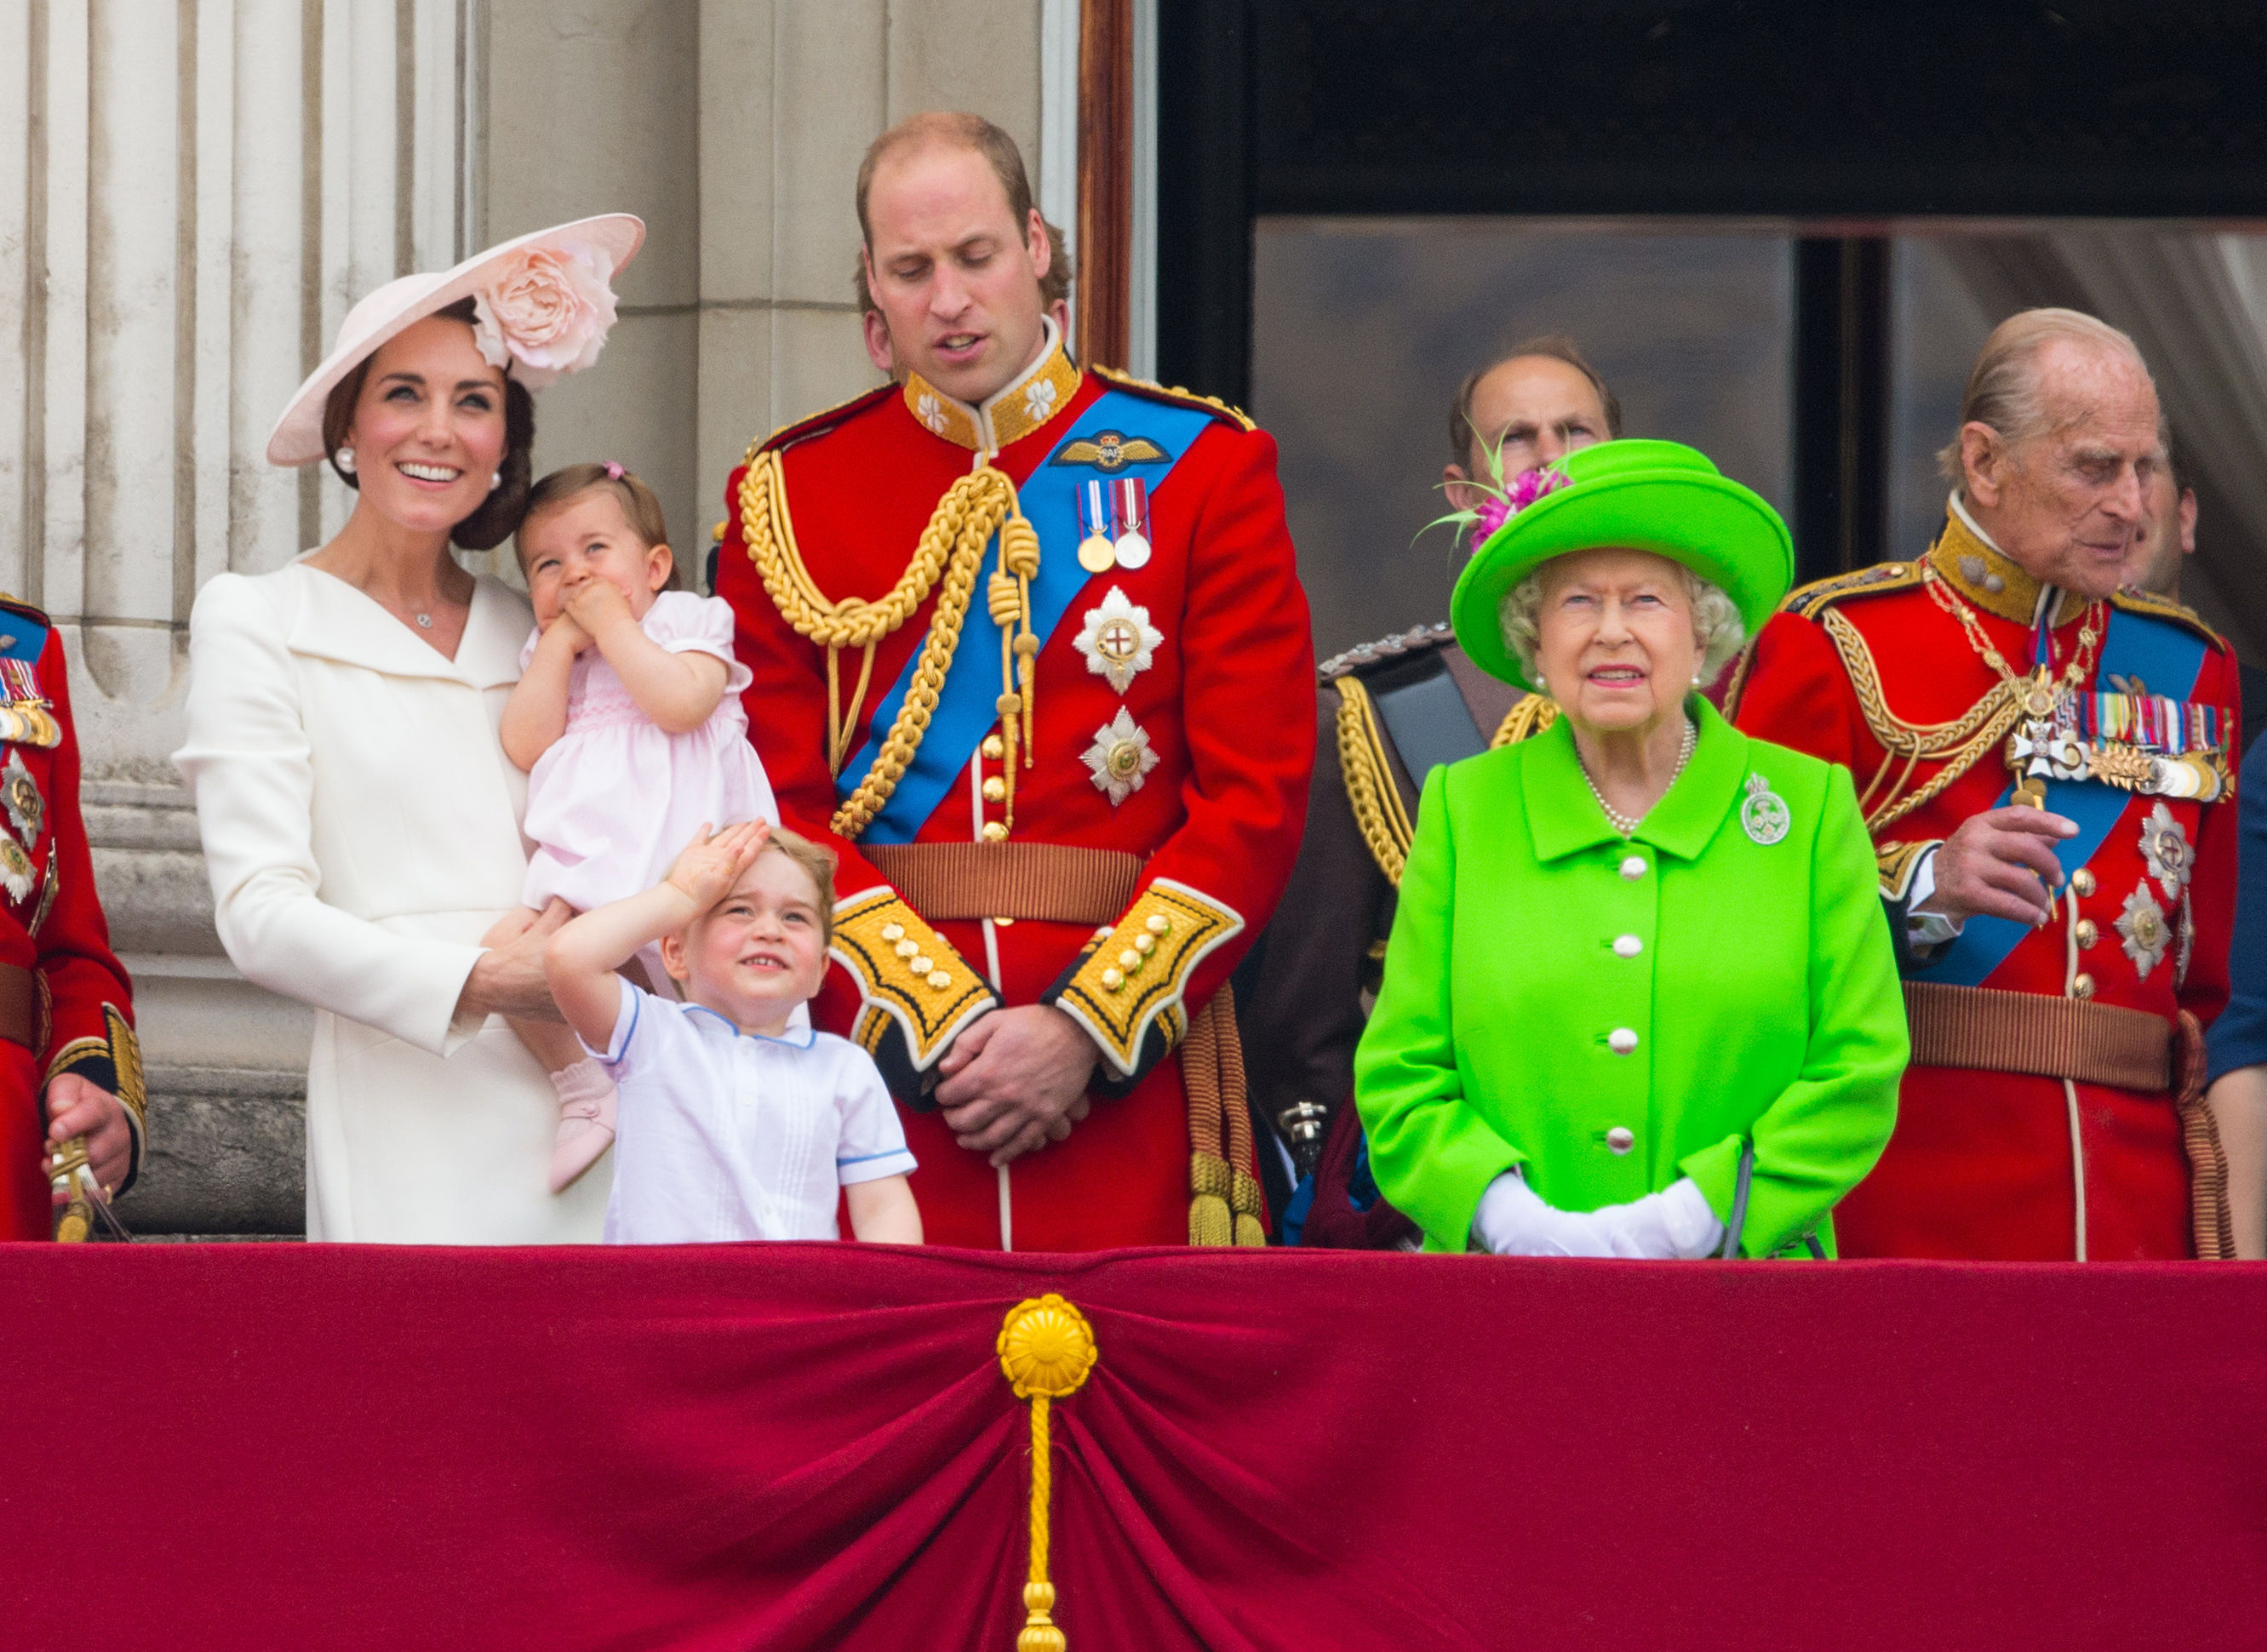 From left: The Duchess of Cambridge, Princess Charlotte, Prince George, the Duke of Cambridge, the Queen  and the Duke of Edinburgh watch a flypast from the balcony of Buckingham Palace, in central London following the Trooping the Colour ceremony at Horse Guards Parade.